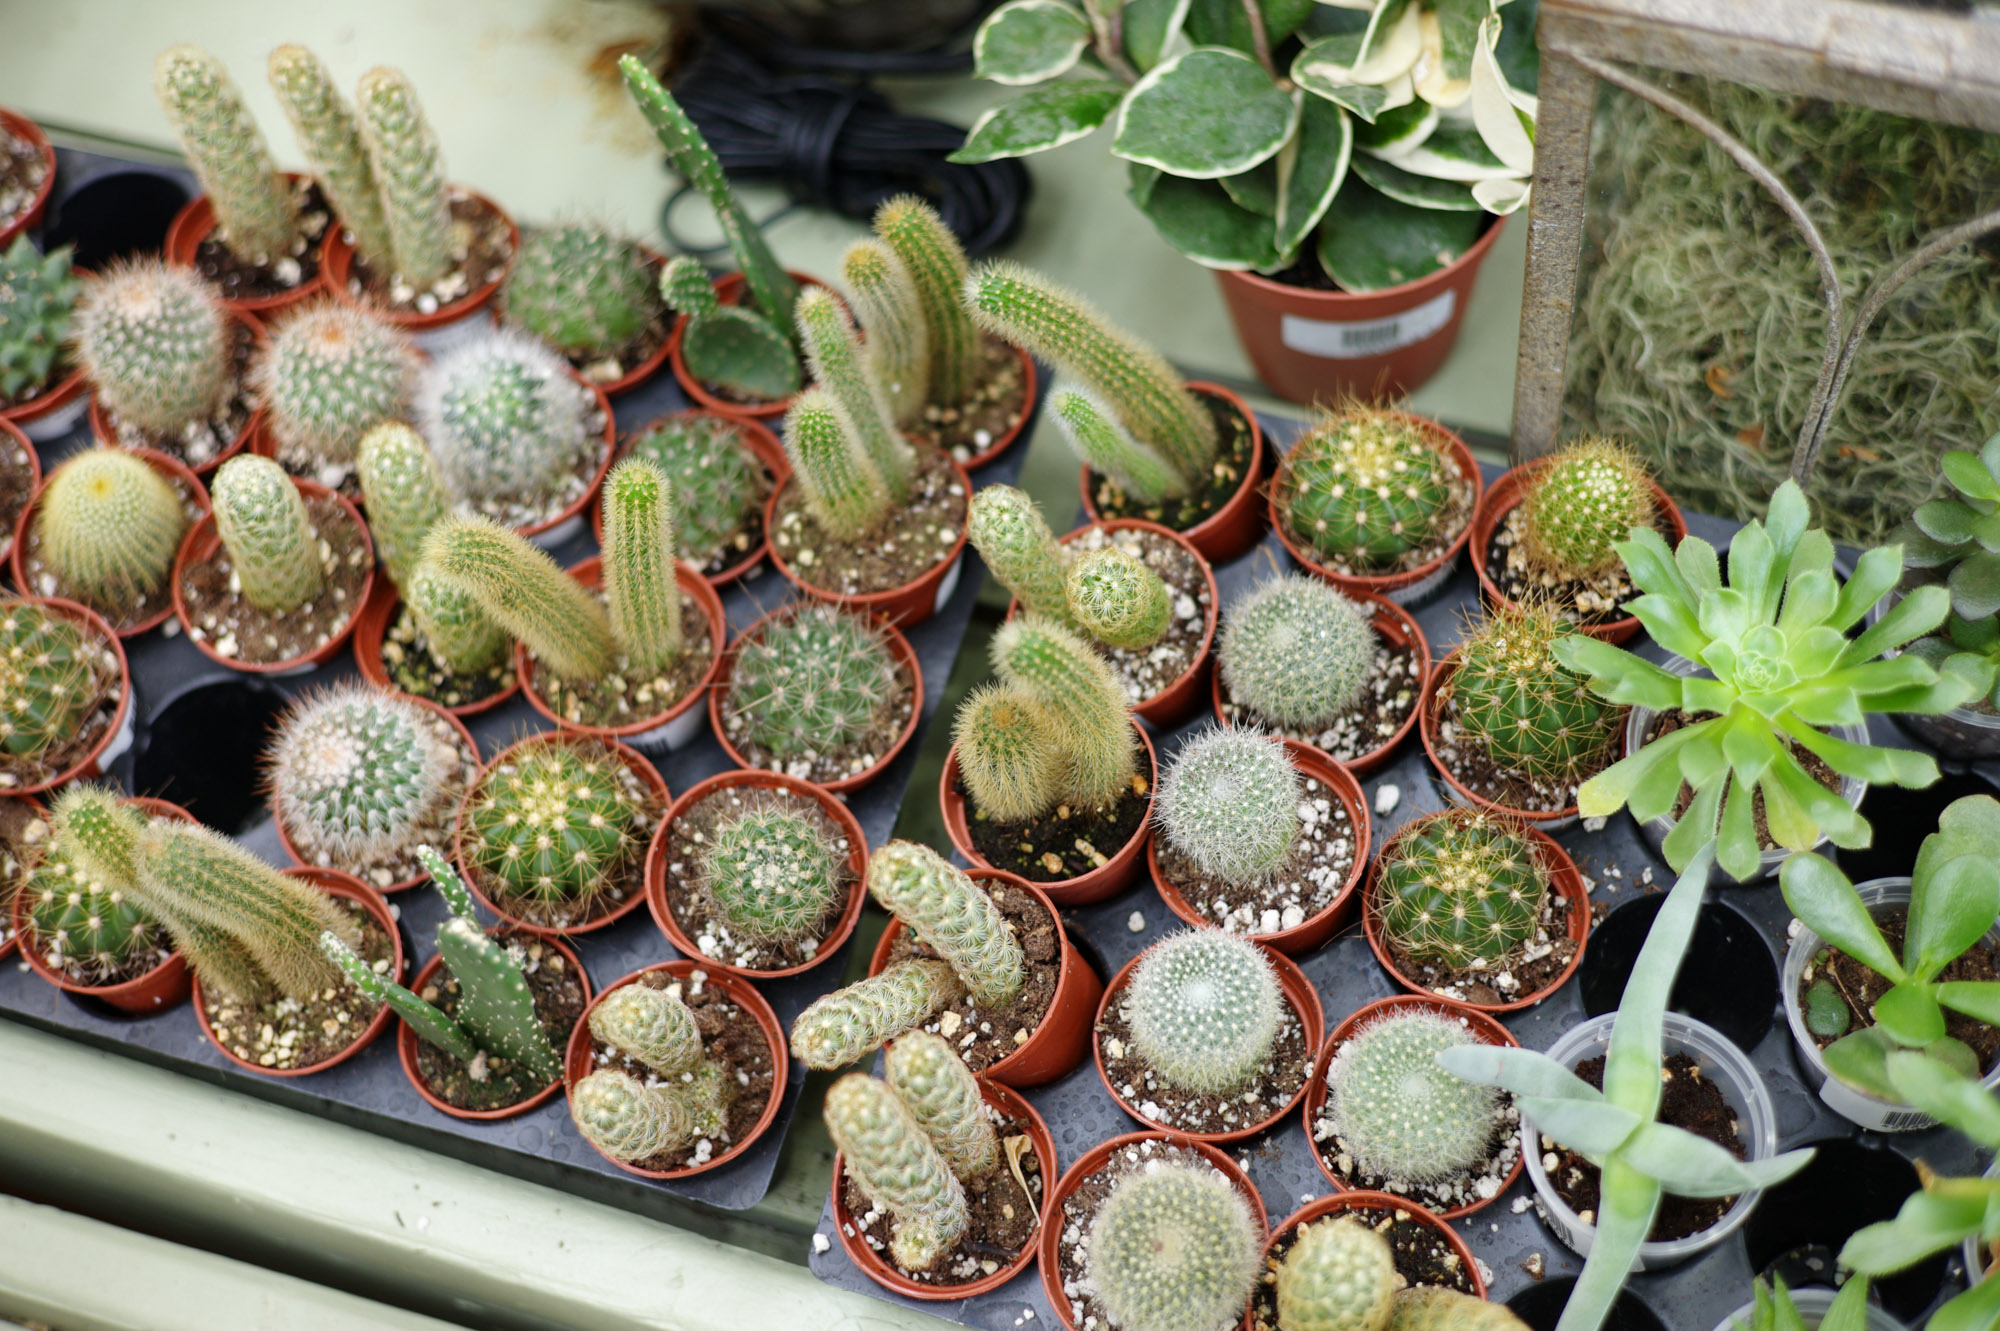 Cactus Houseplants for Sale in Maryland - Patuxent Nursery